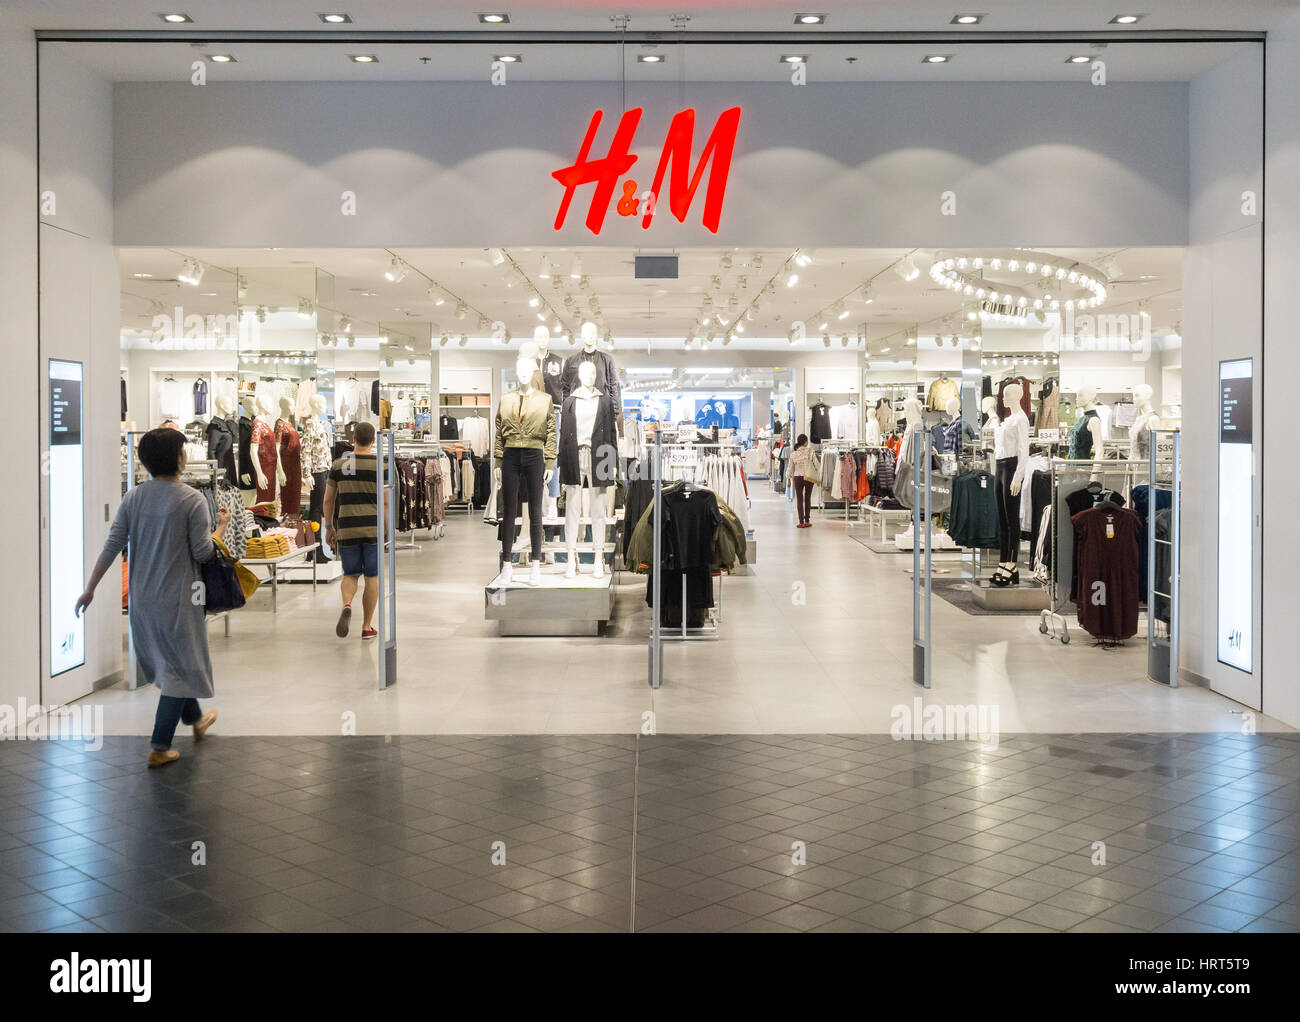 Hennes & Mauritz AB (Swedish pronunciation: [²hɛnːɛs ɔ ˈma.ʊrɪts]; H&M) is a Swedish multinational clothing-retail company known for its fast-fashion clothing for men, women, teenagers and children.